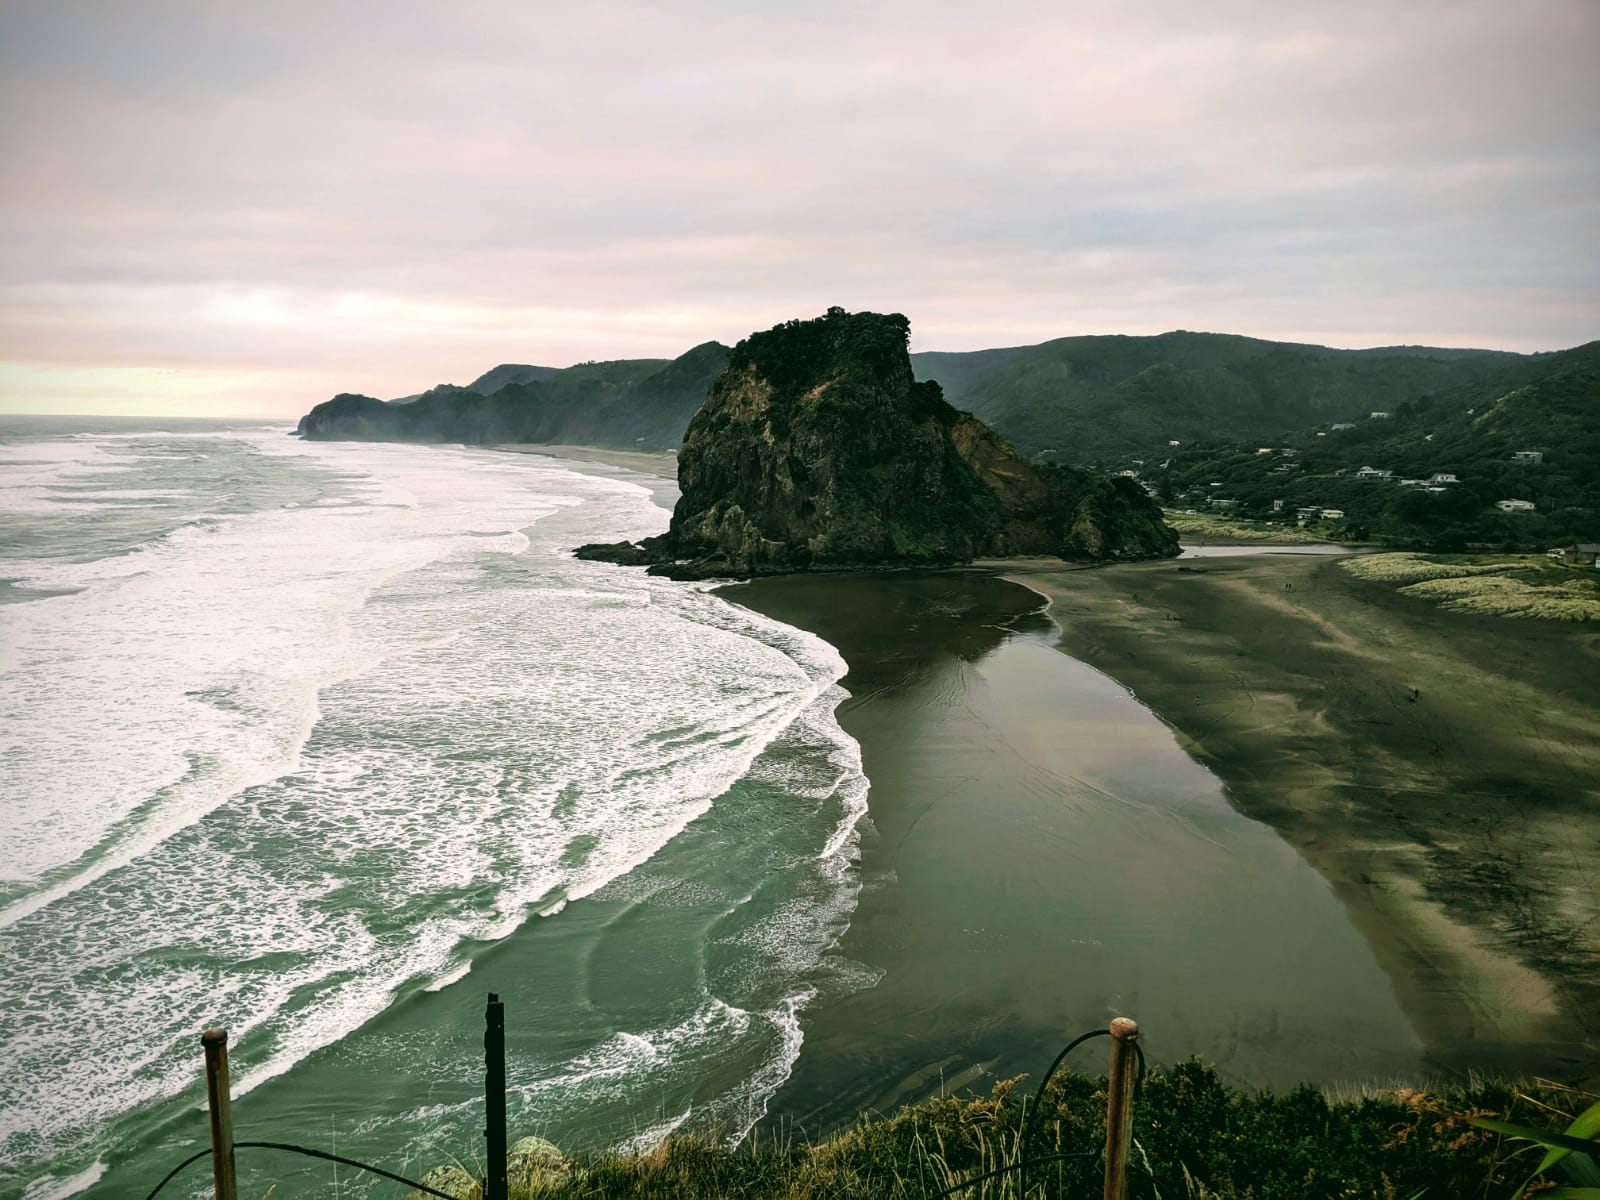 Asia Pacific Yoga Teacher Training Piha Holiday Home 1.jpg Asia Pacific Yoga Teacher Training Piha Beach